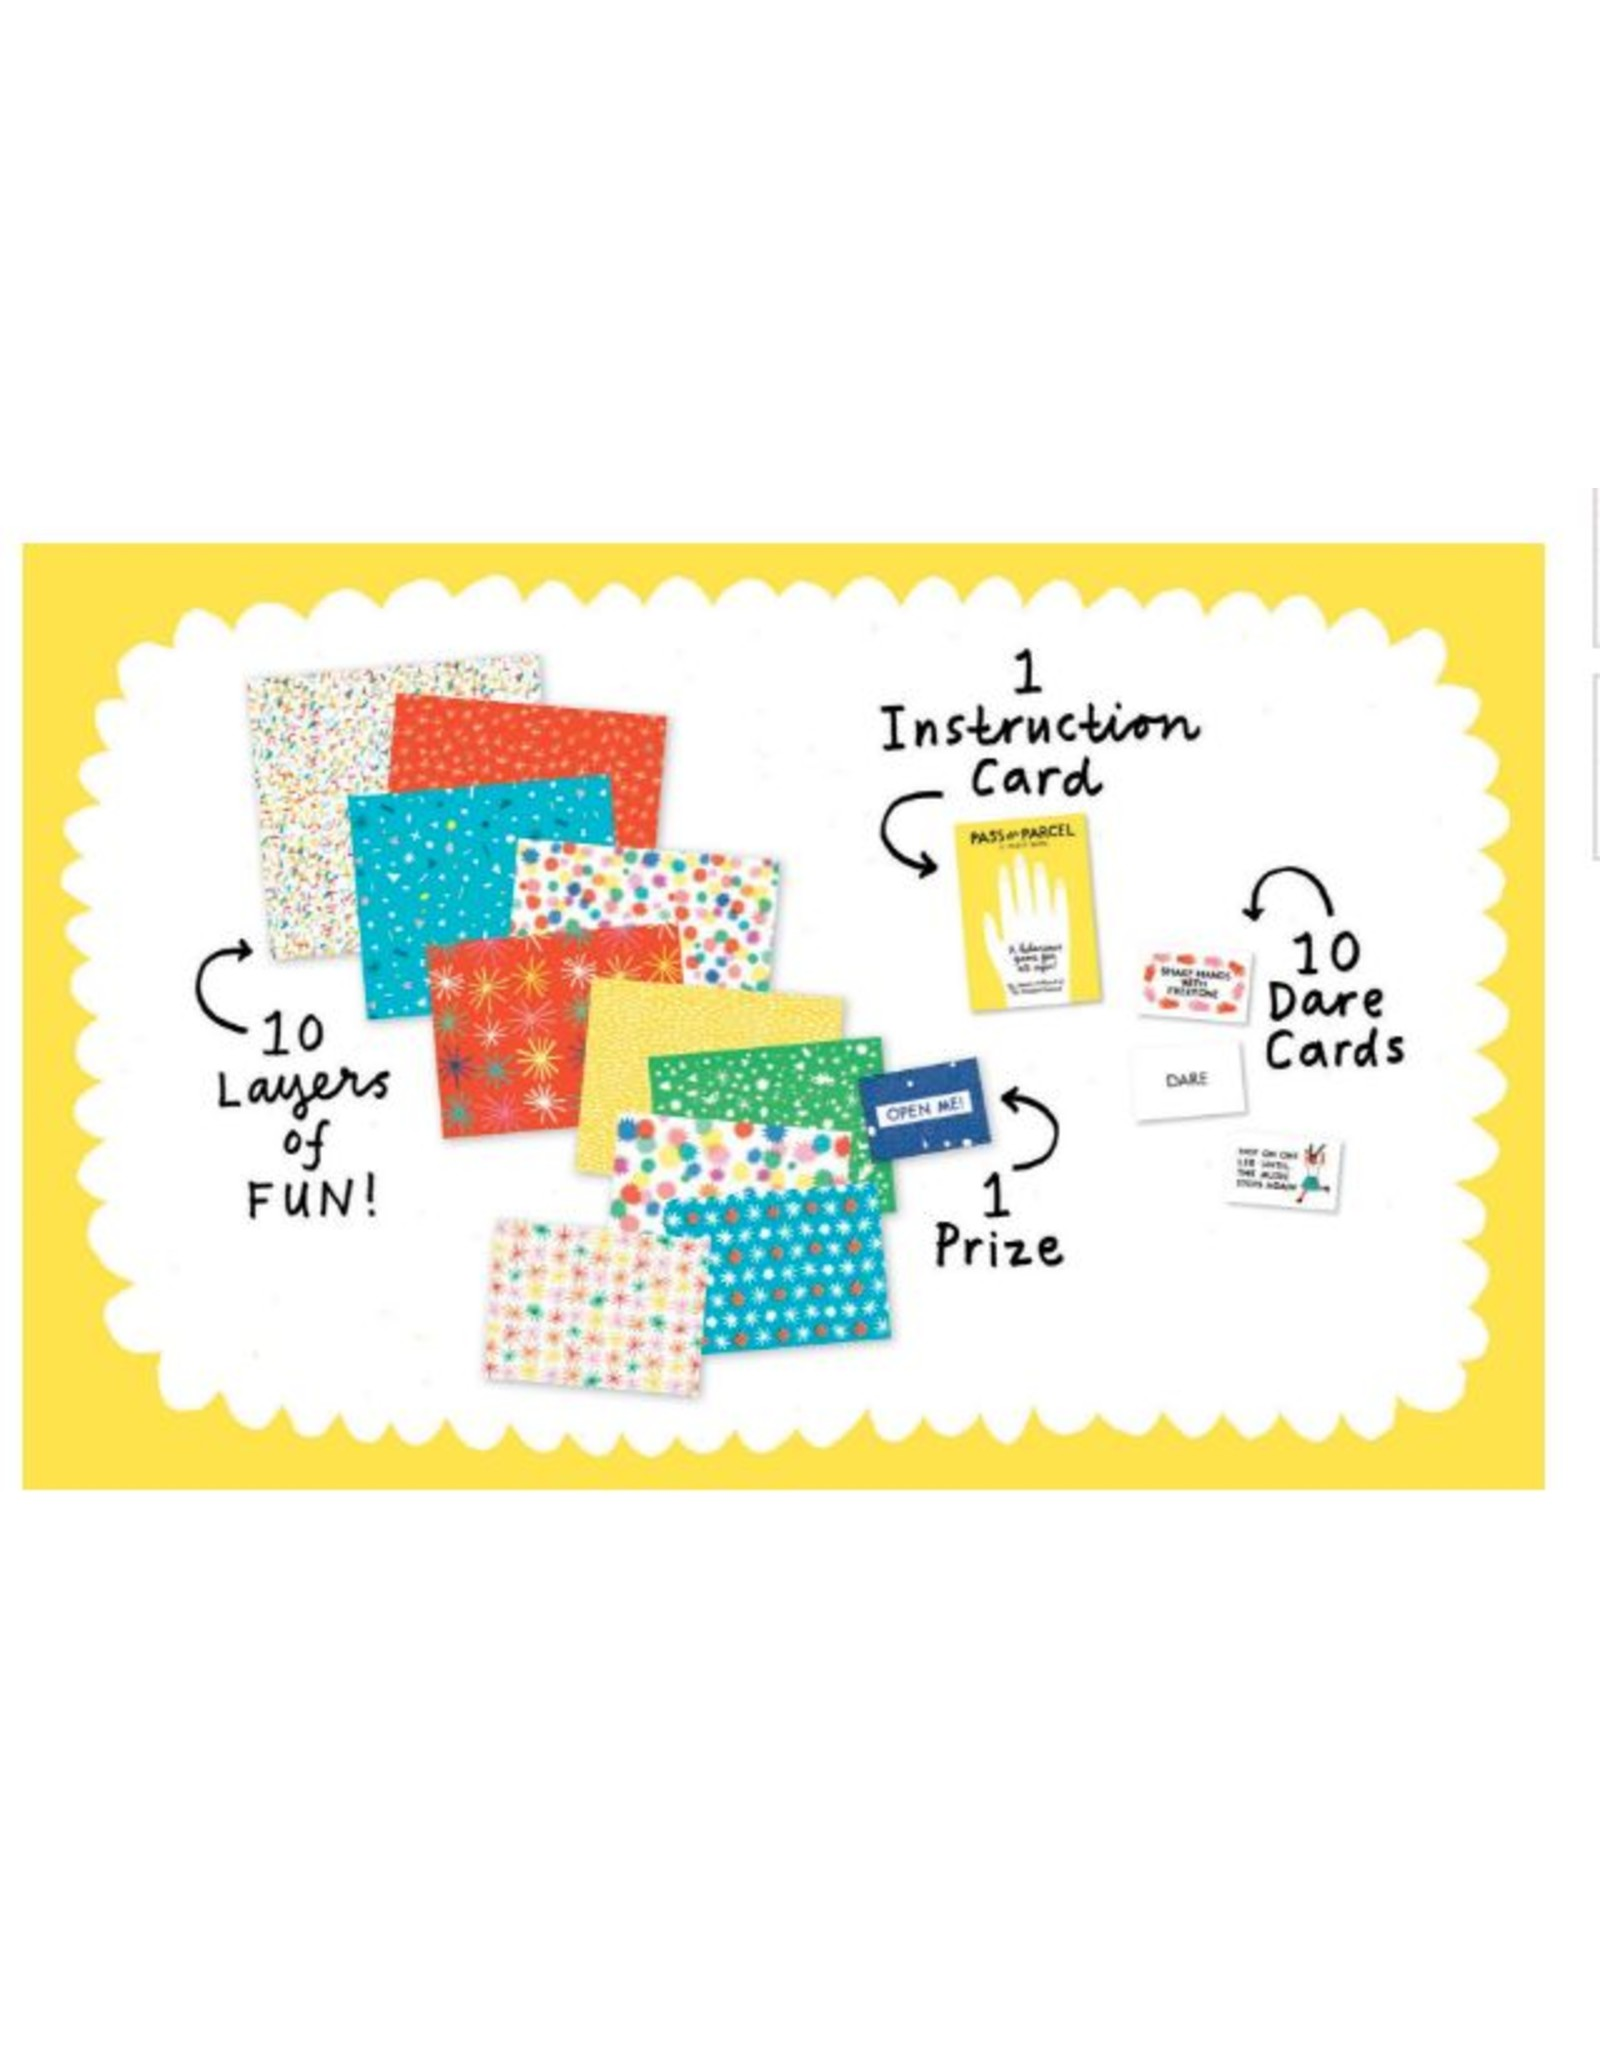 Exit9 Gift Emporium Camp Care Package - Fun & Games